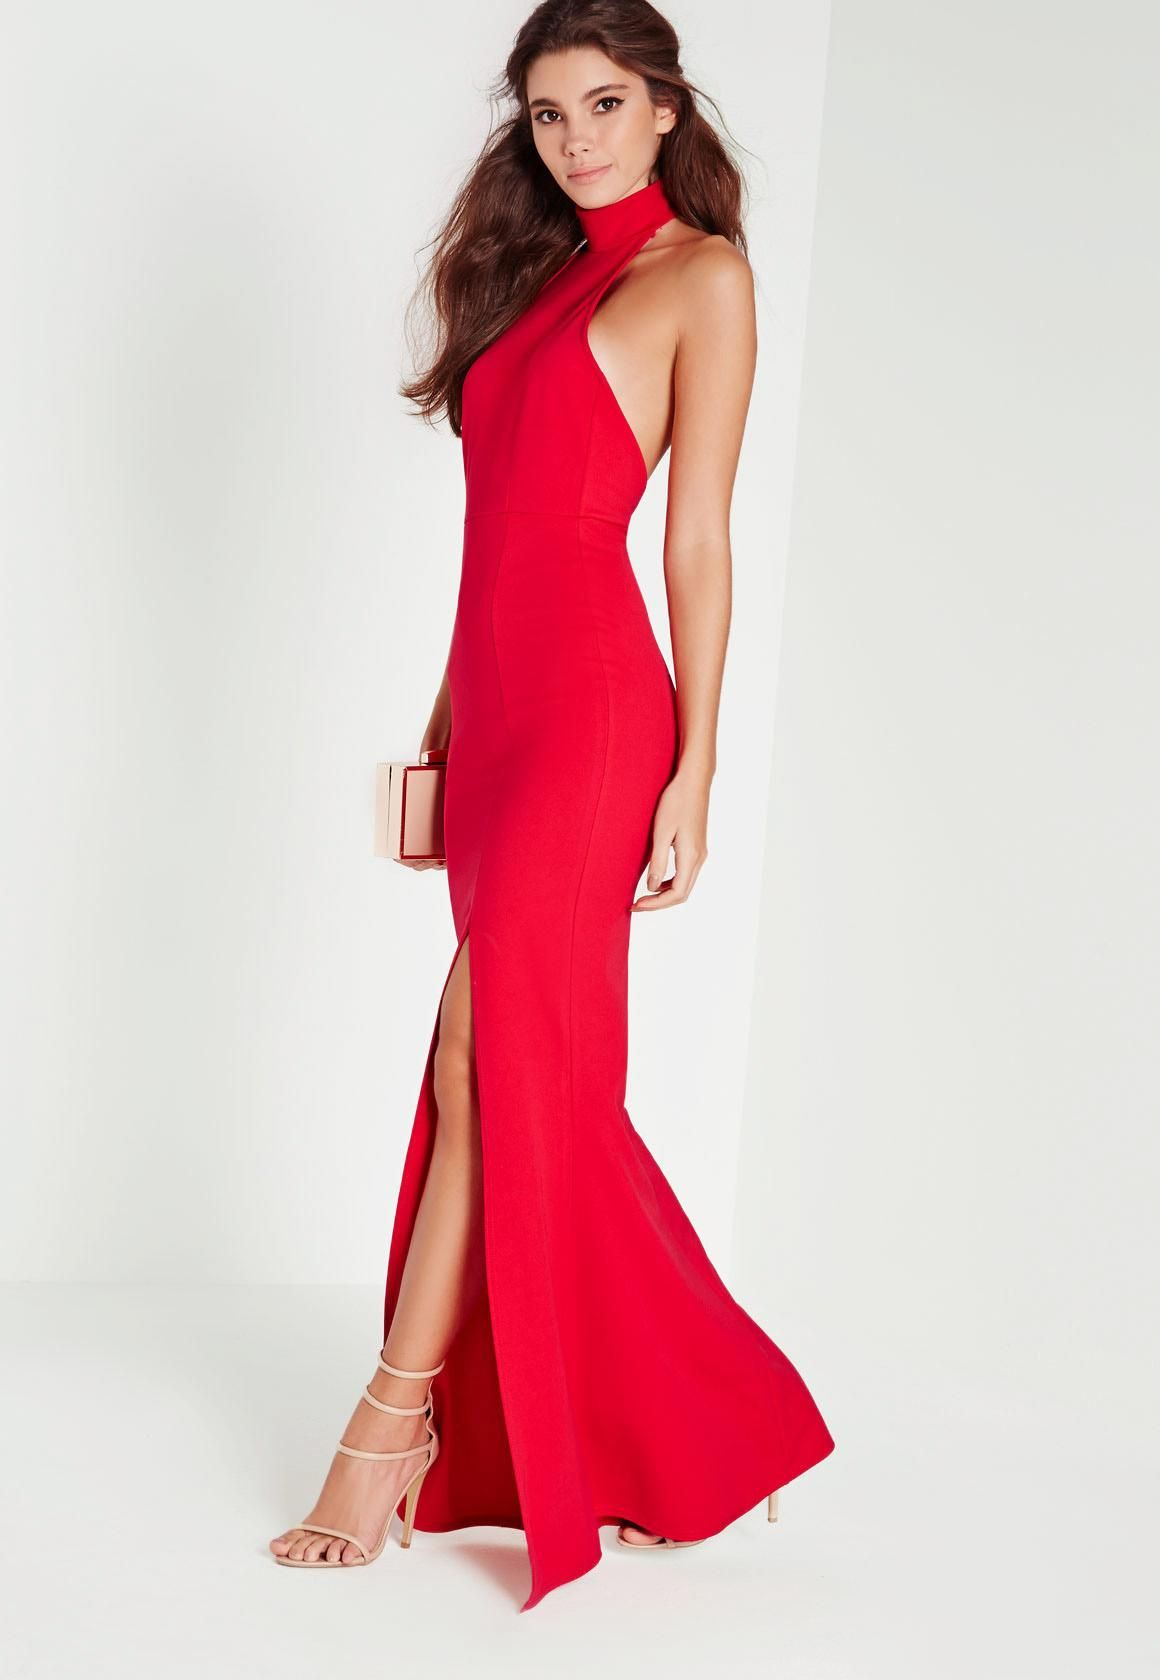 Choker maxi dress red missguided choker and maxi dresses